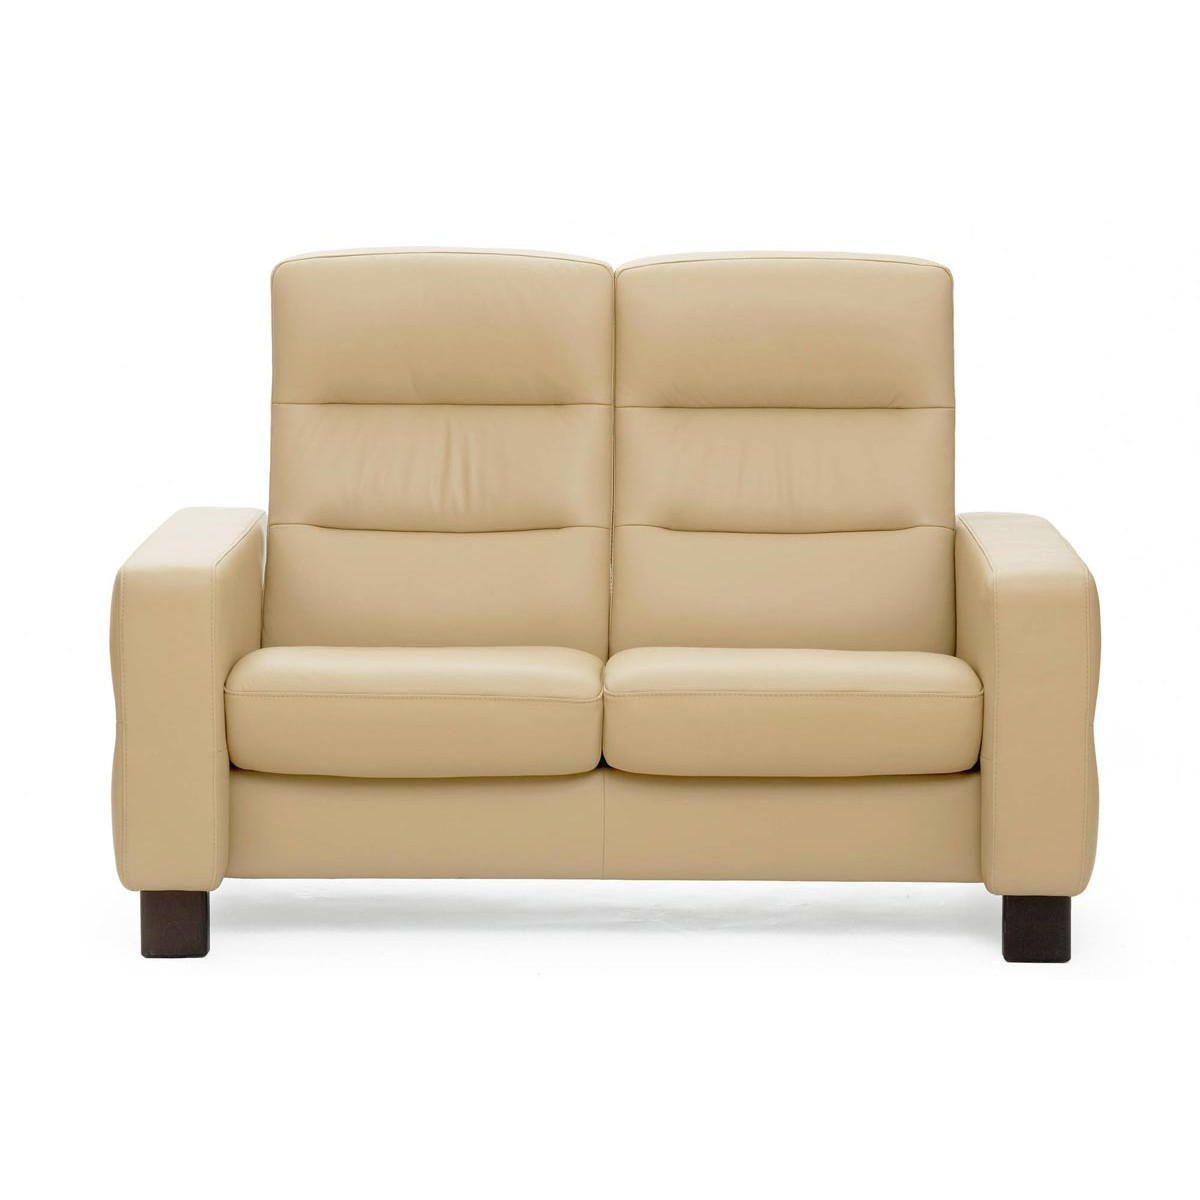 vitra chair bouroullec erwan back loveseat id z lounge at chairs ronan seating alcove furniture f high and